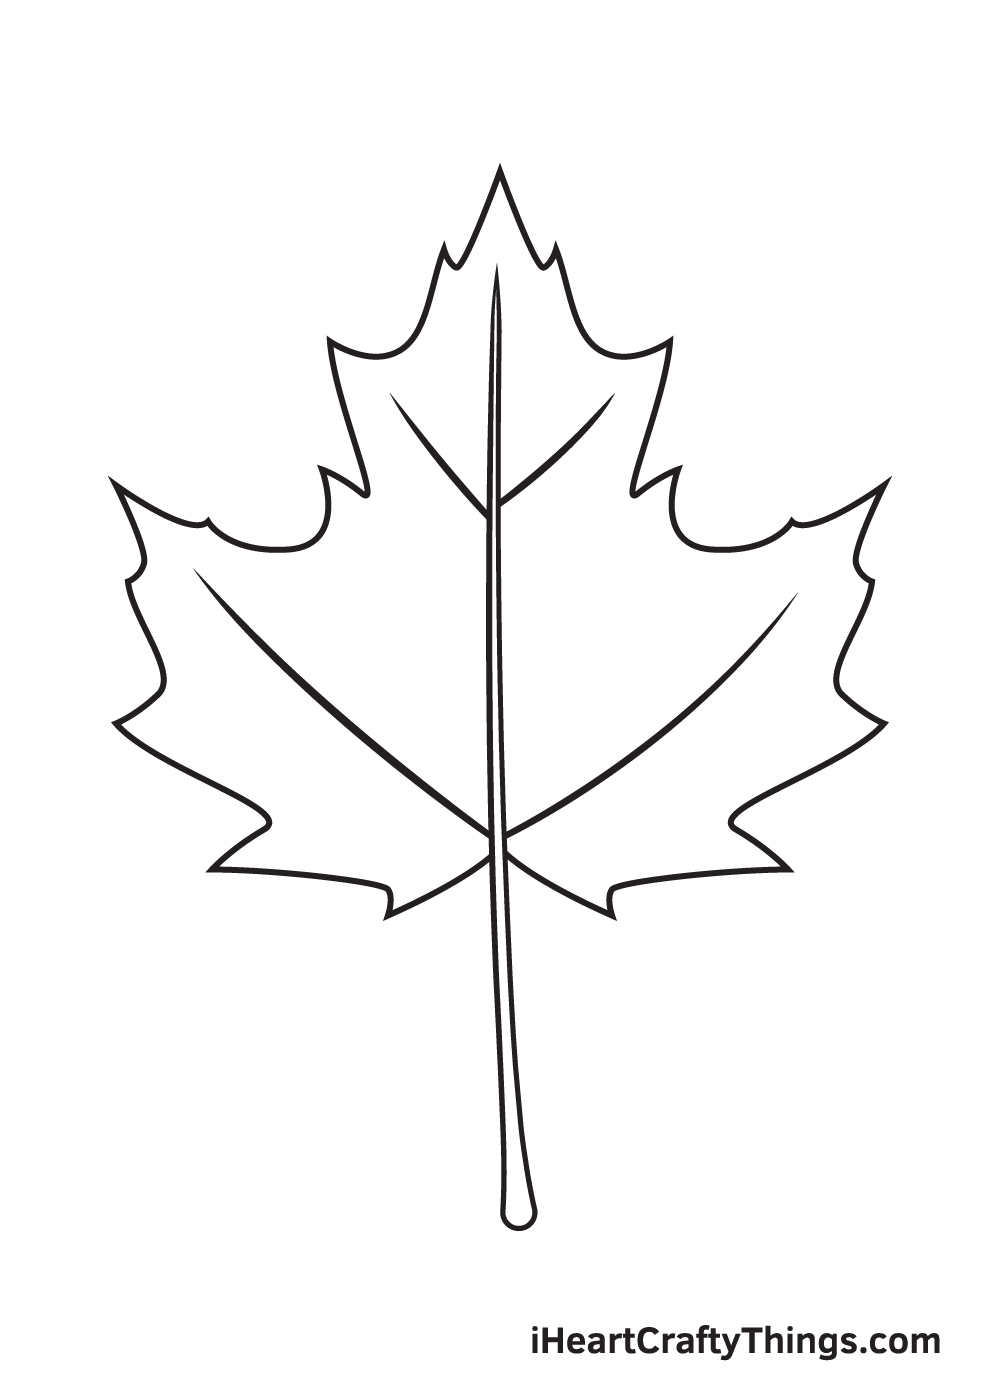 fall leaves drawing step 8